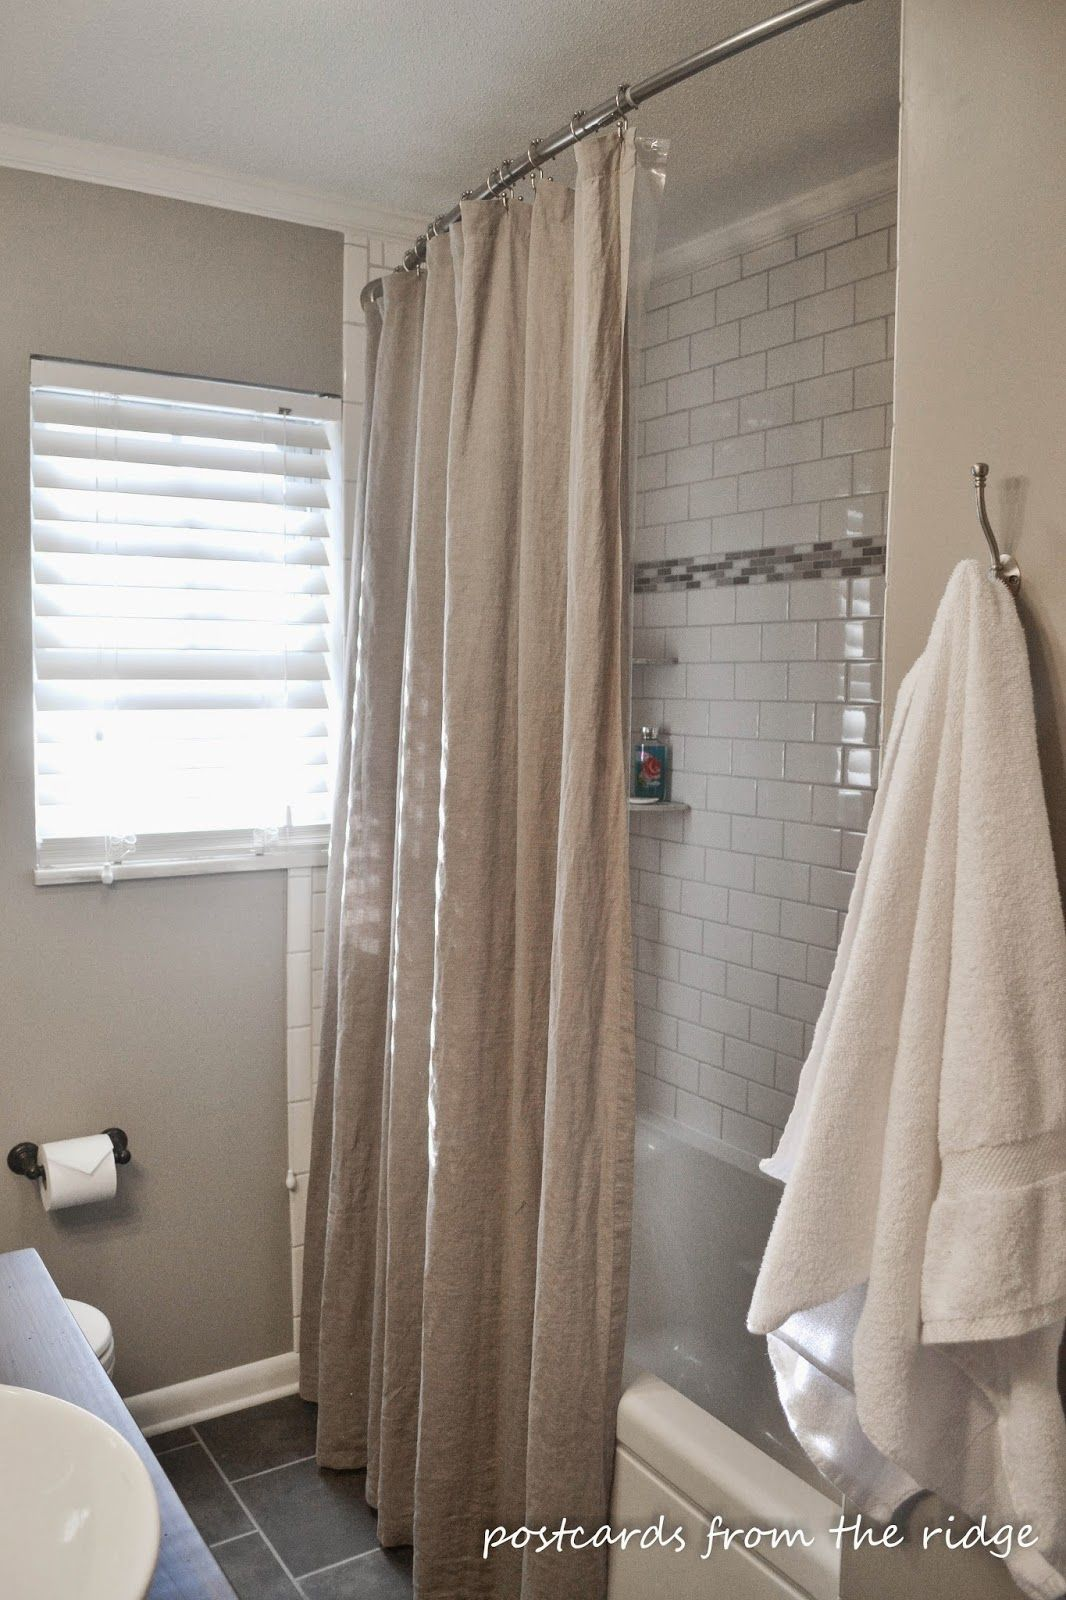 I Love The Extra Long Shower Curtain And Curved Rod Lots Of Great Ideas For Bathroom Here